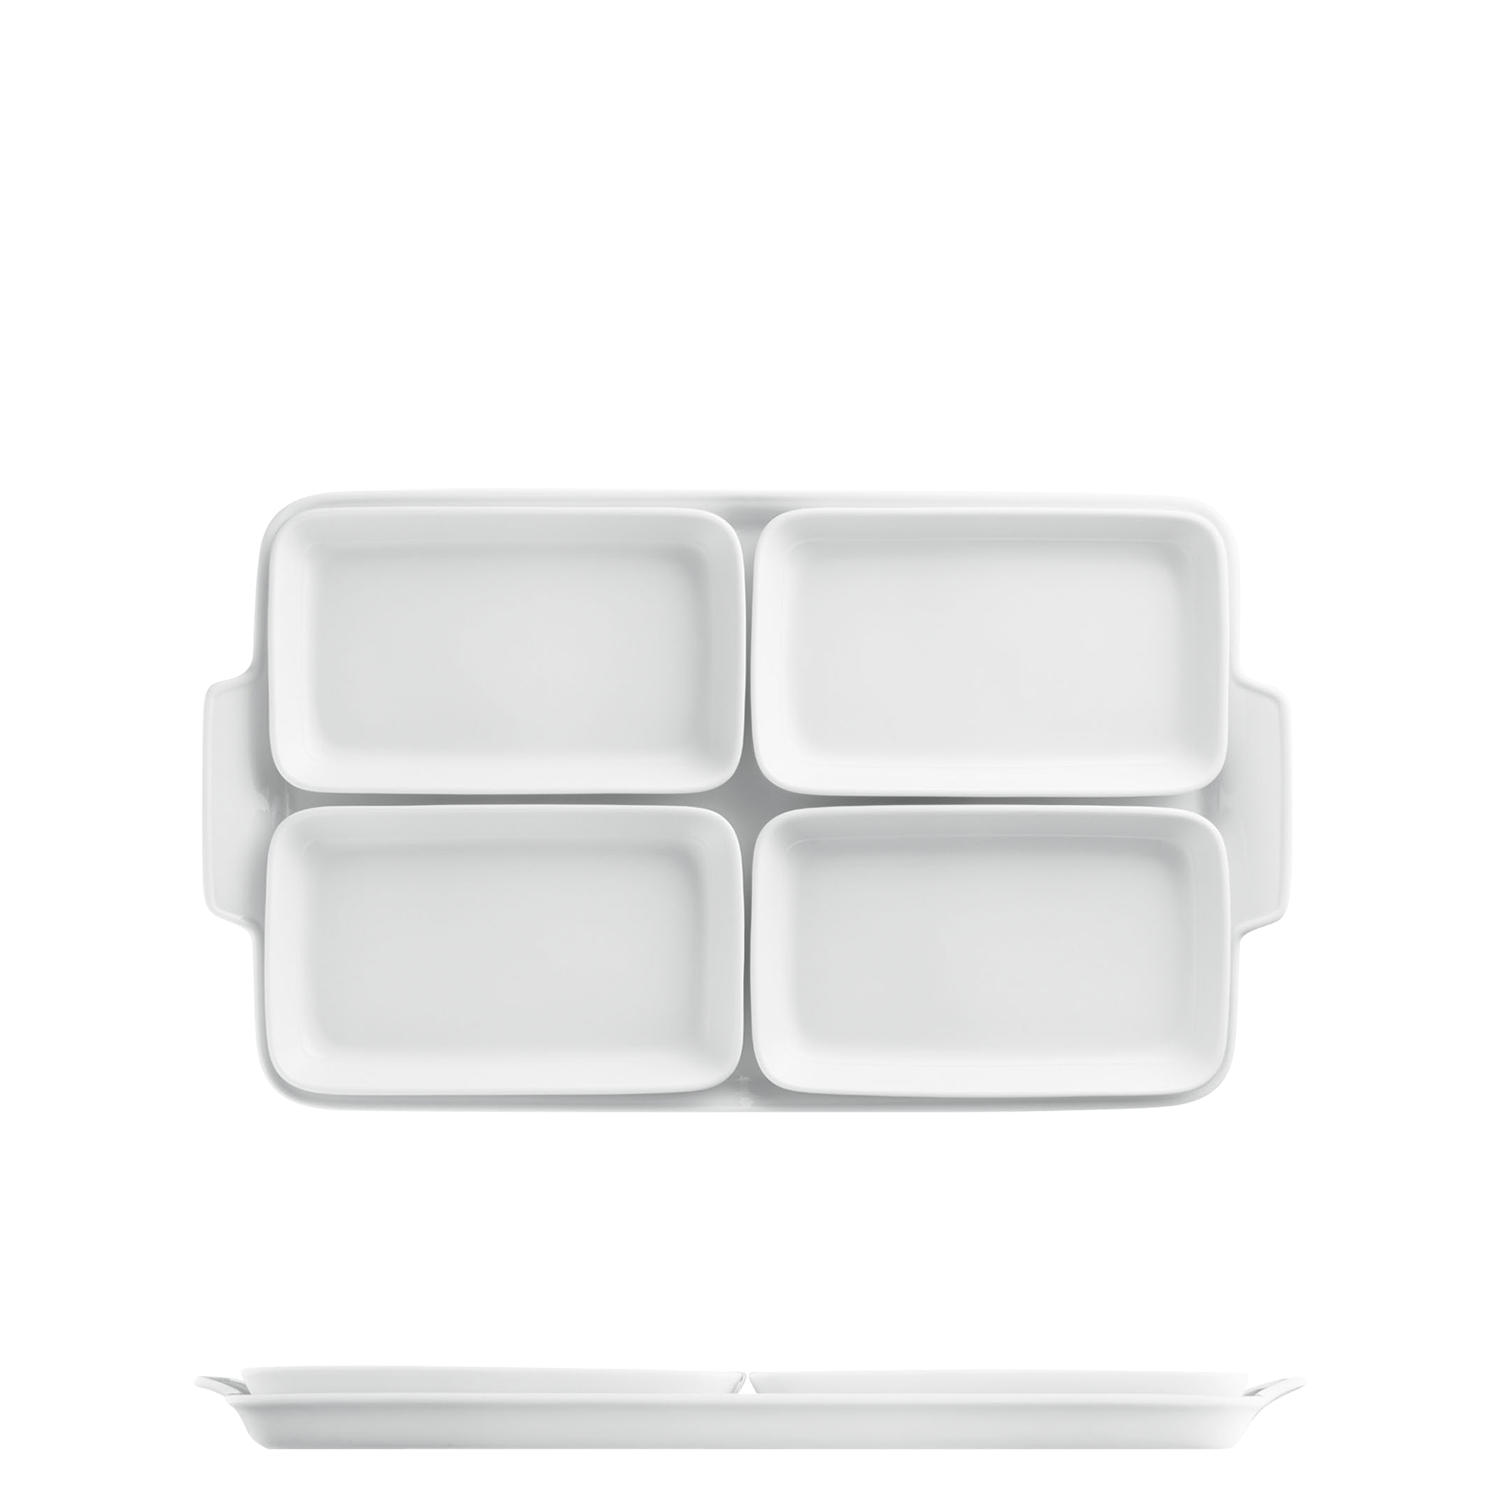 Partitioned dish, 5 pieces